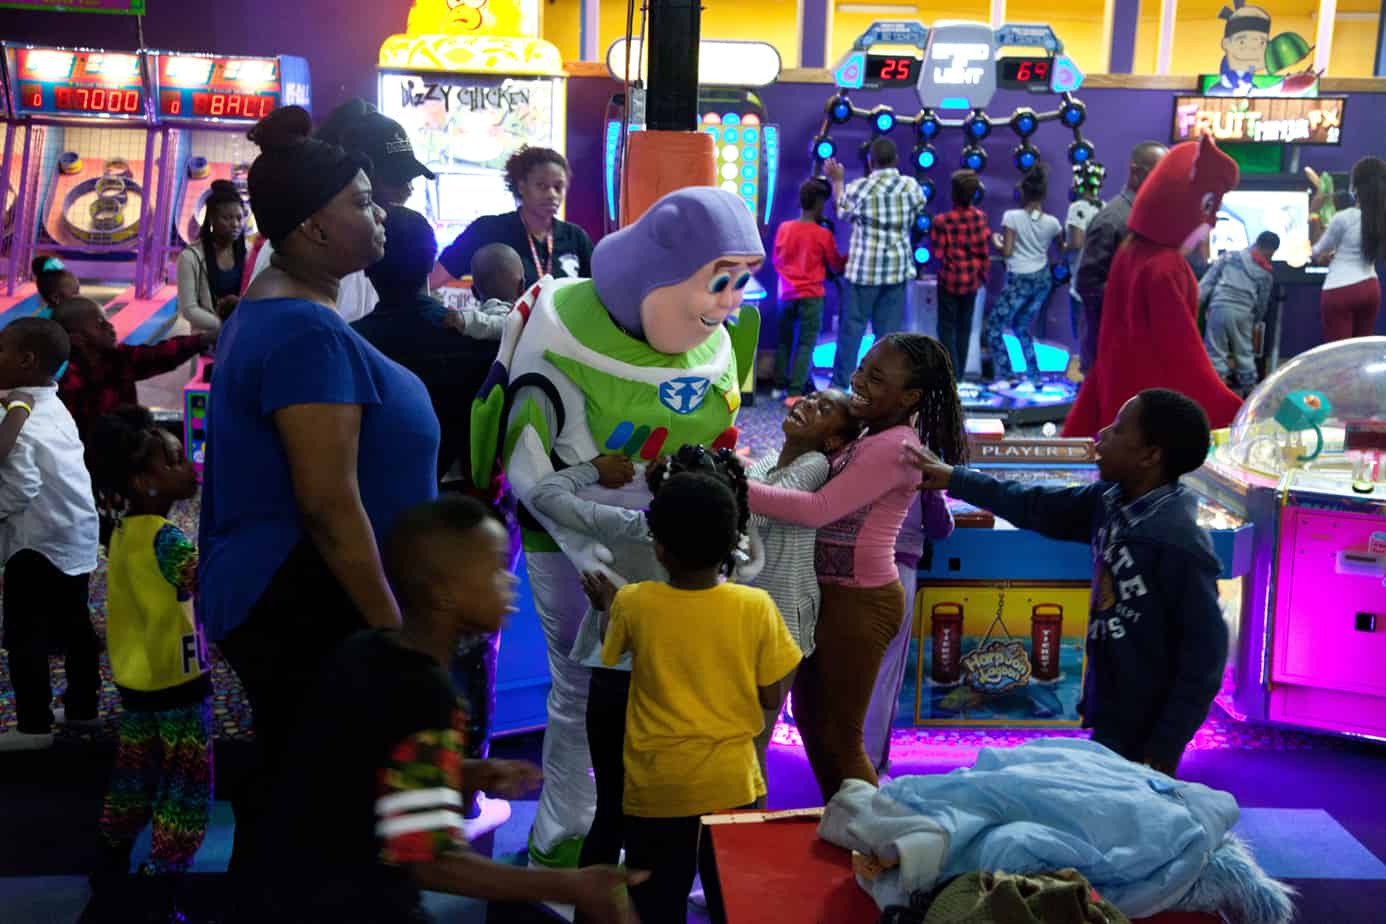 Bring Your Child's Party to Metro Fun Center in Atlanta, GA!